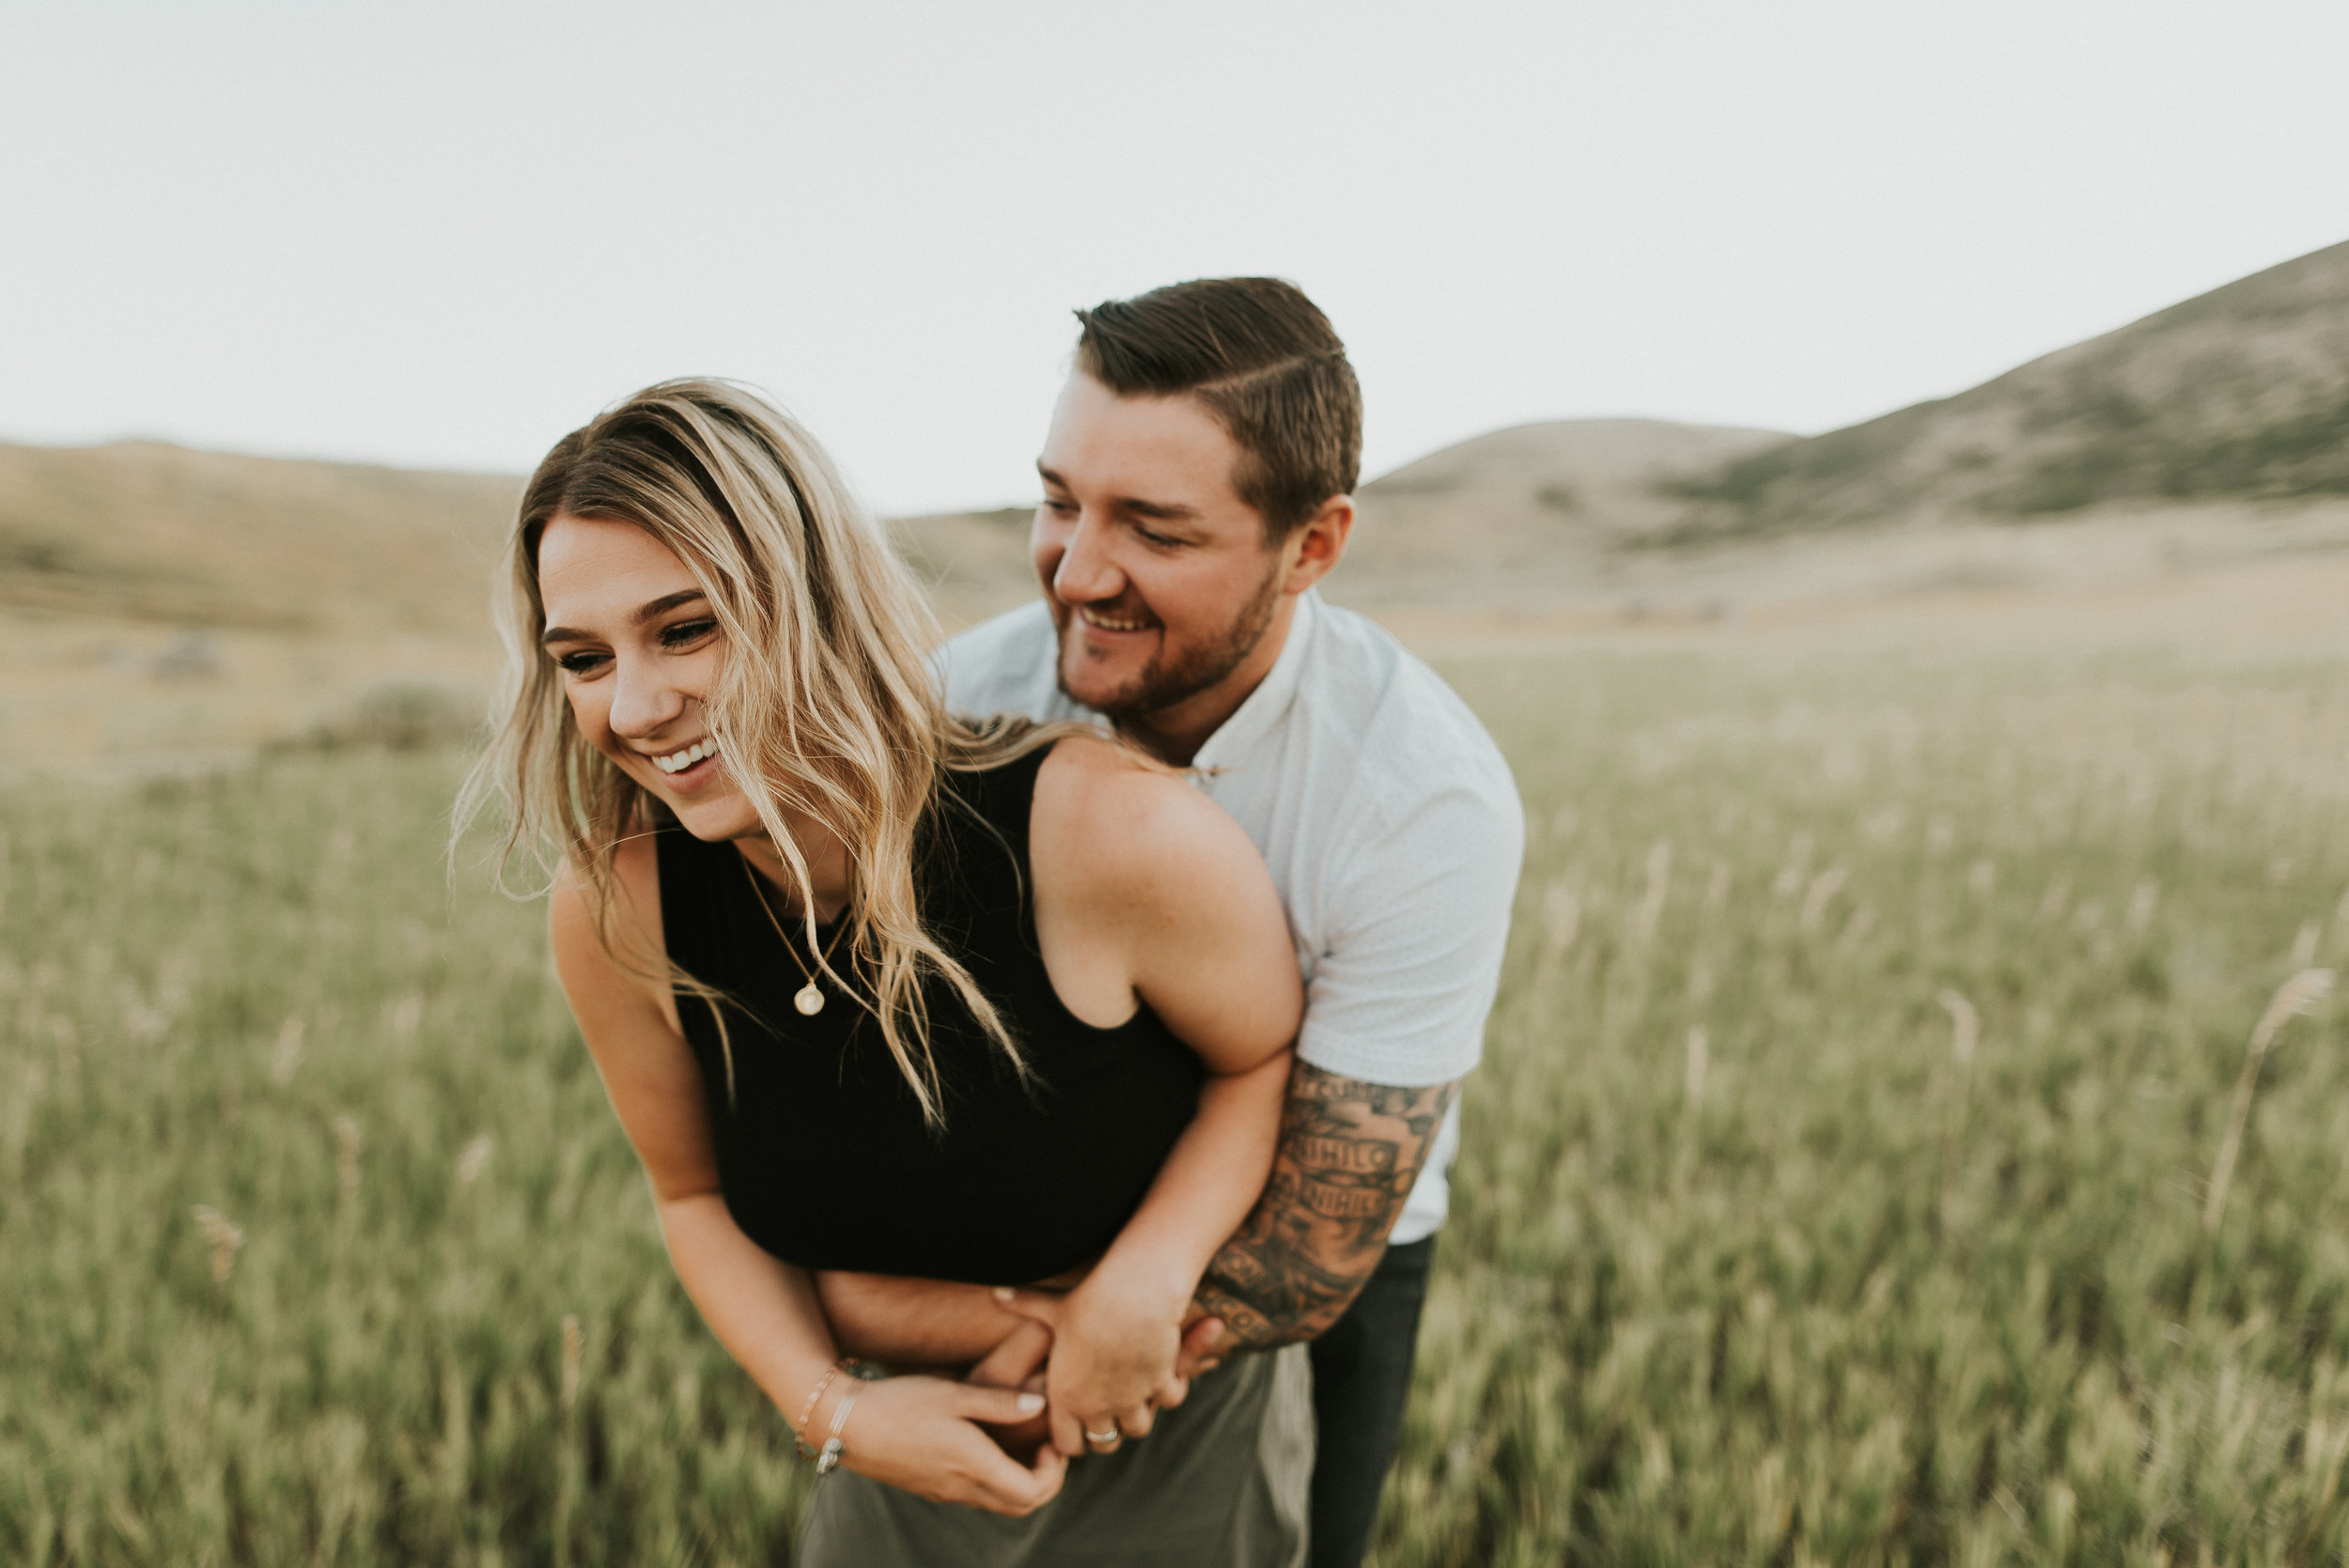 Denver Colorado anniversary session with tattooed rad couple